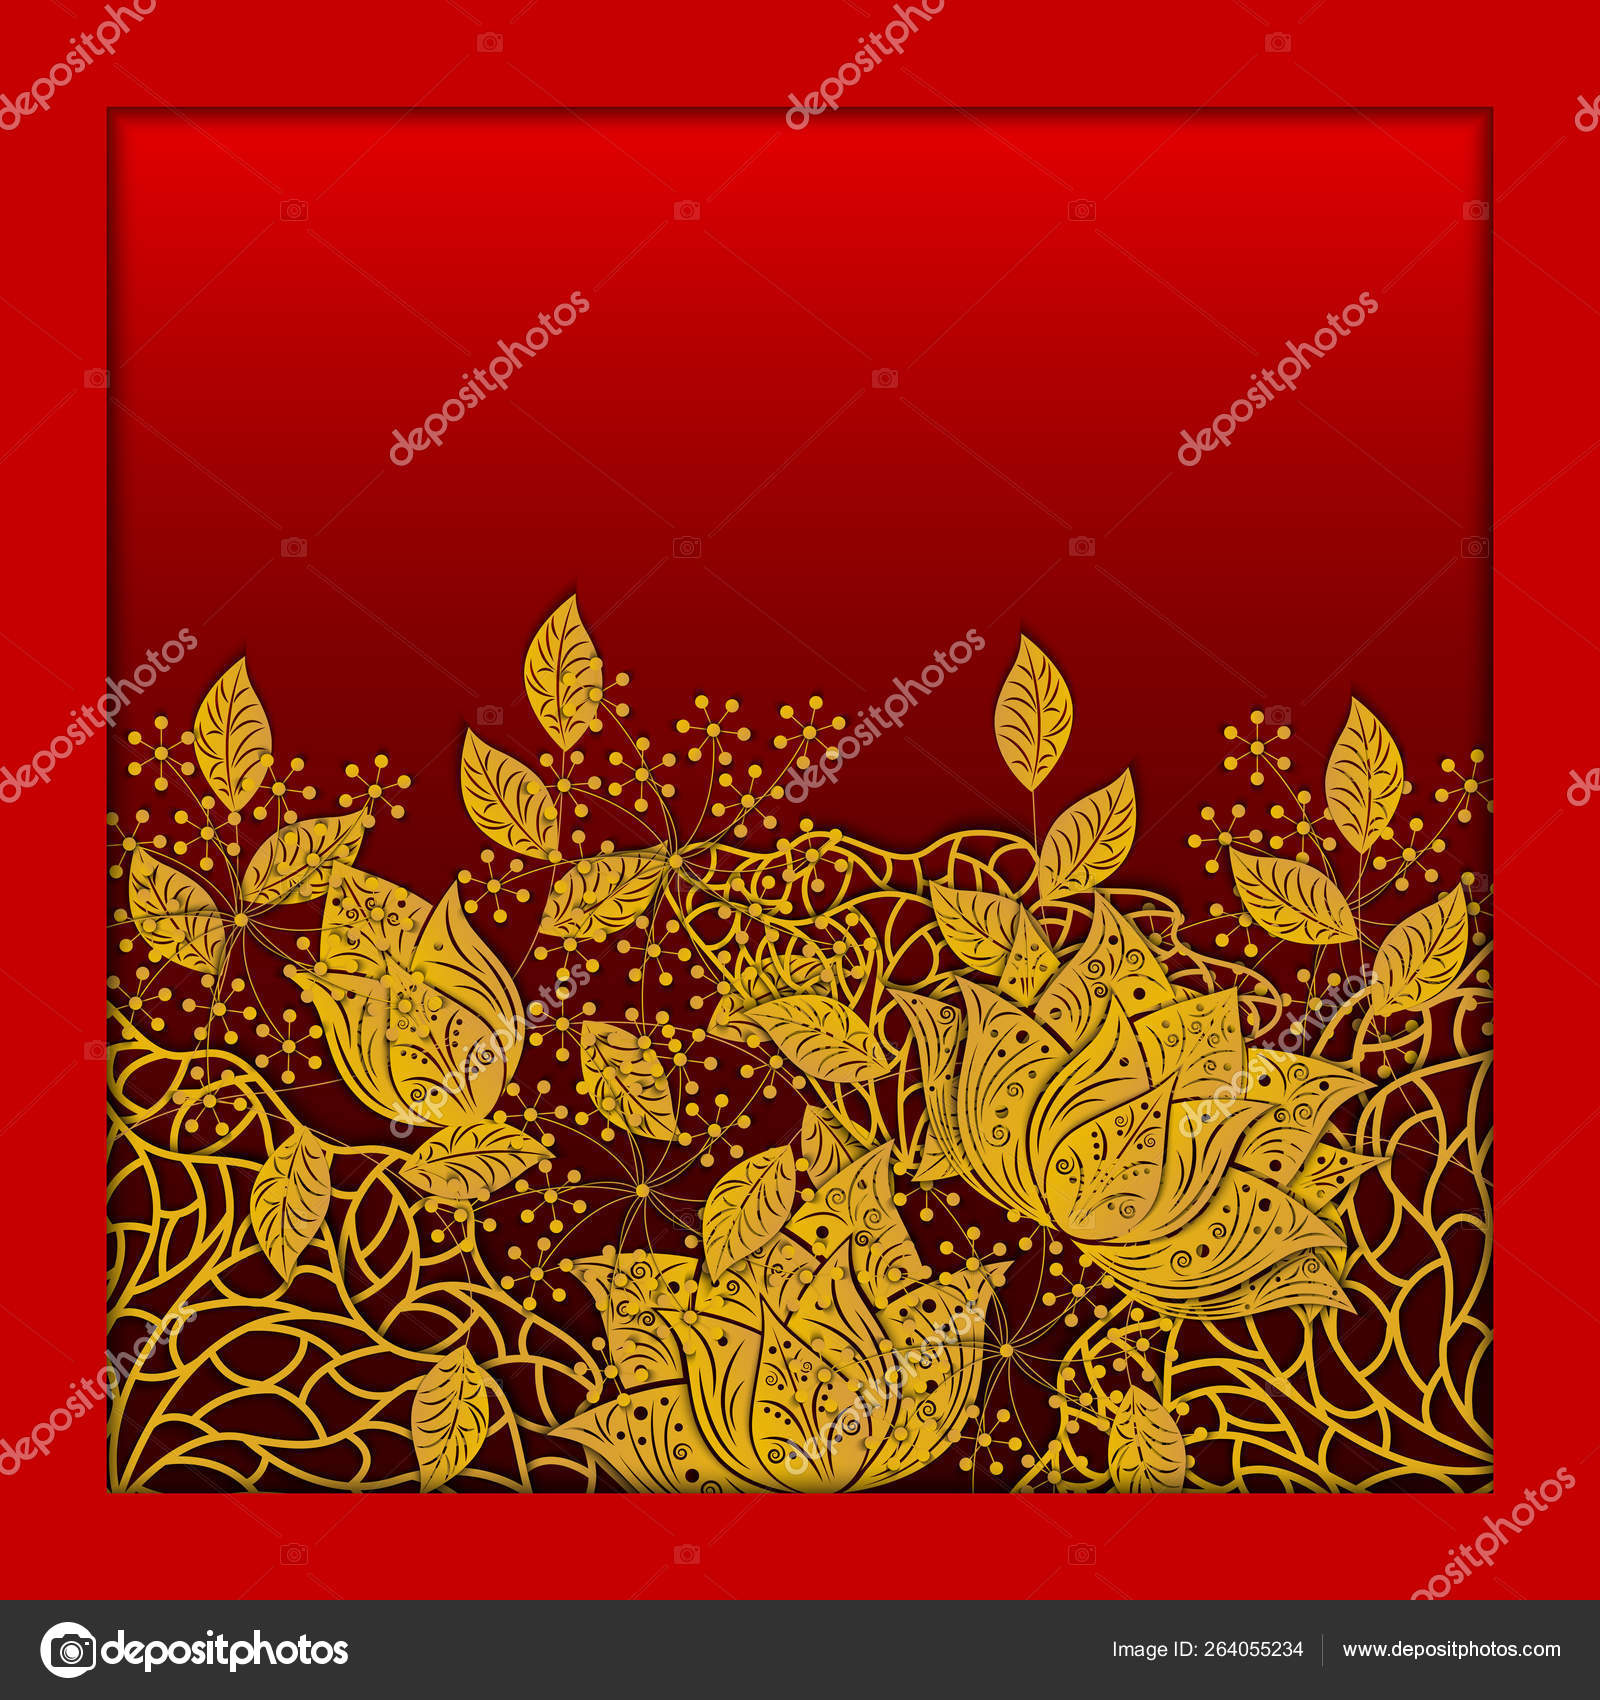 Background With Flower Lotos Leaves Wedding Ornament Concept Floral Poster Invitation Flyer Cover Banner Background 3d Vector Illustration Paper Cut Out Art Style Stock Vector C Rna0704 264055234